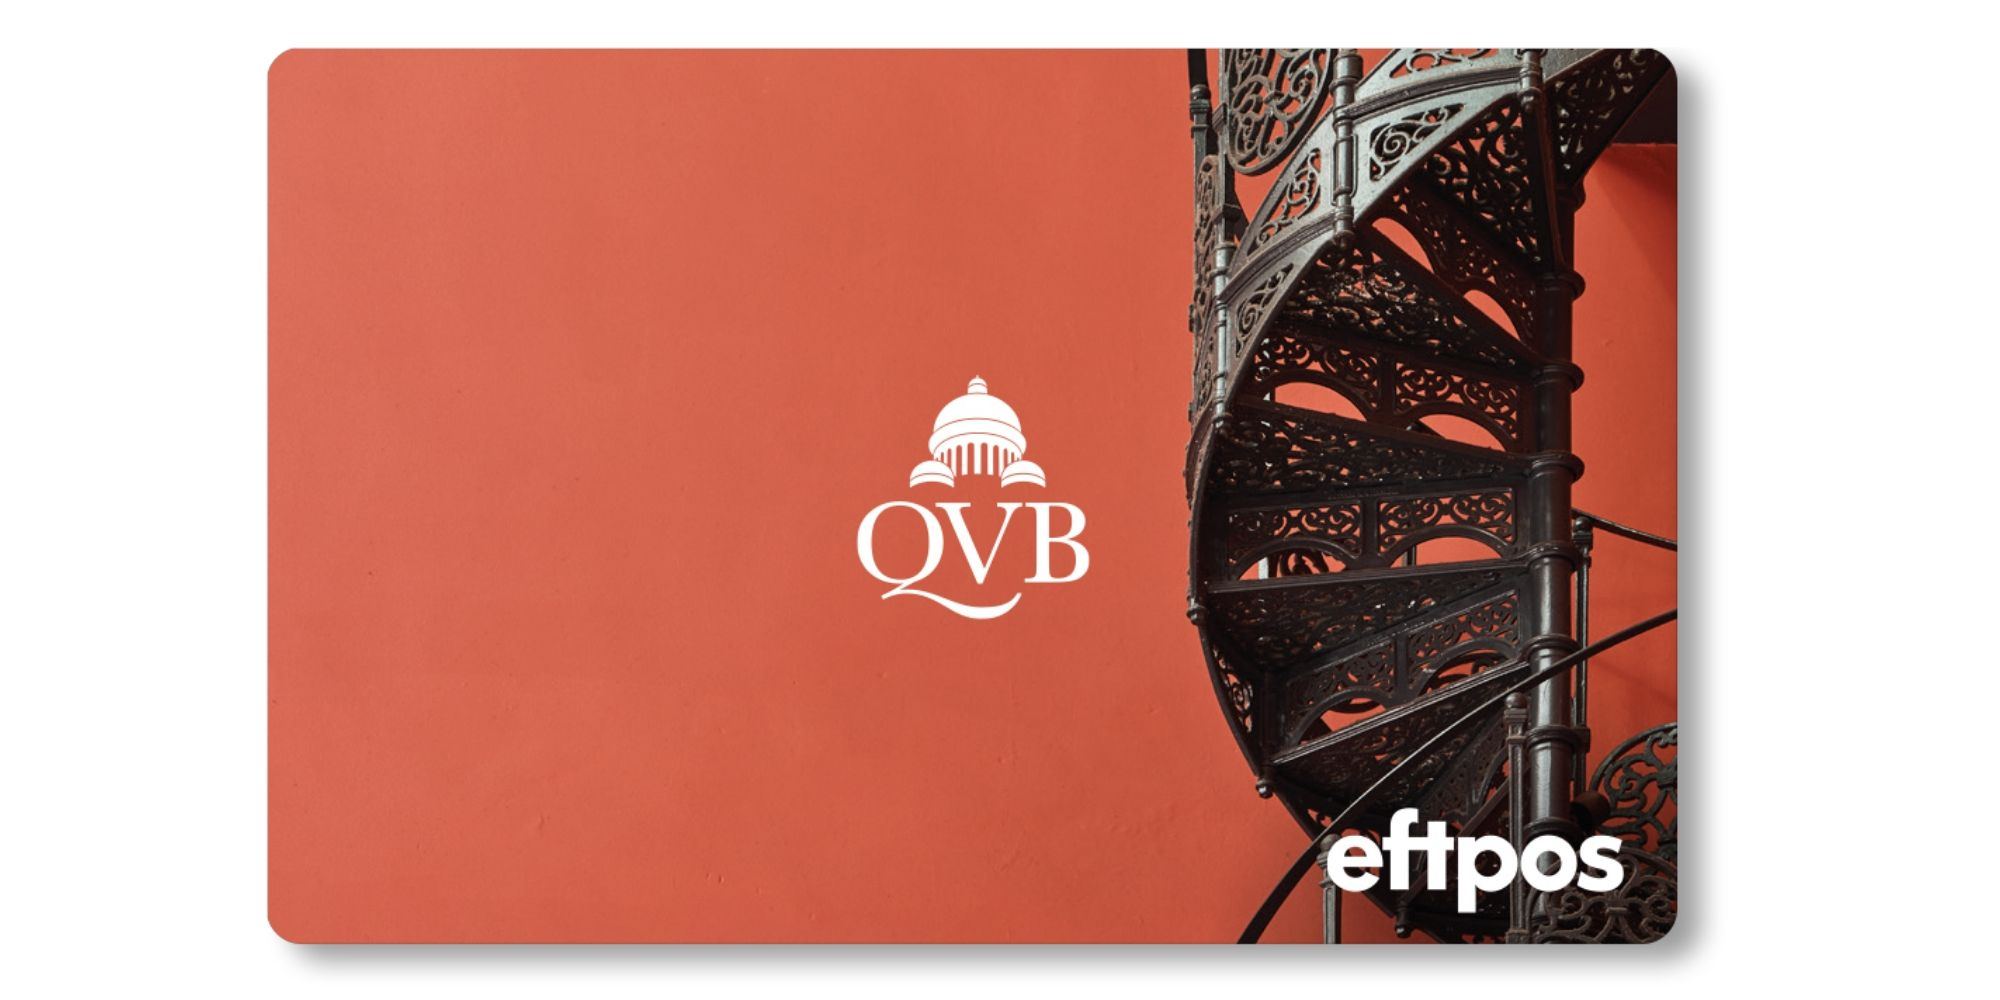 QVB Gift Cards now available